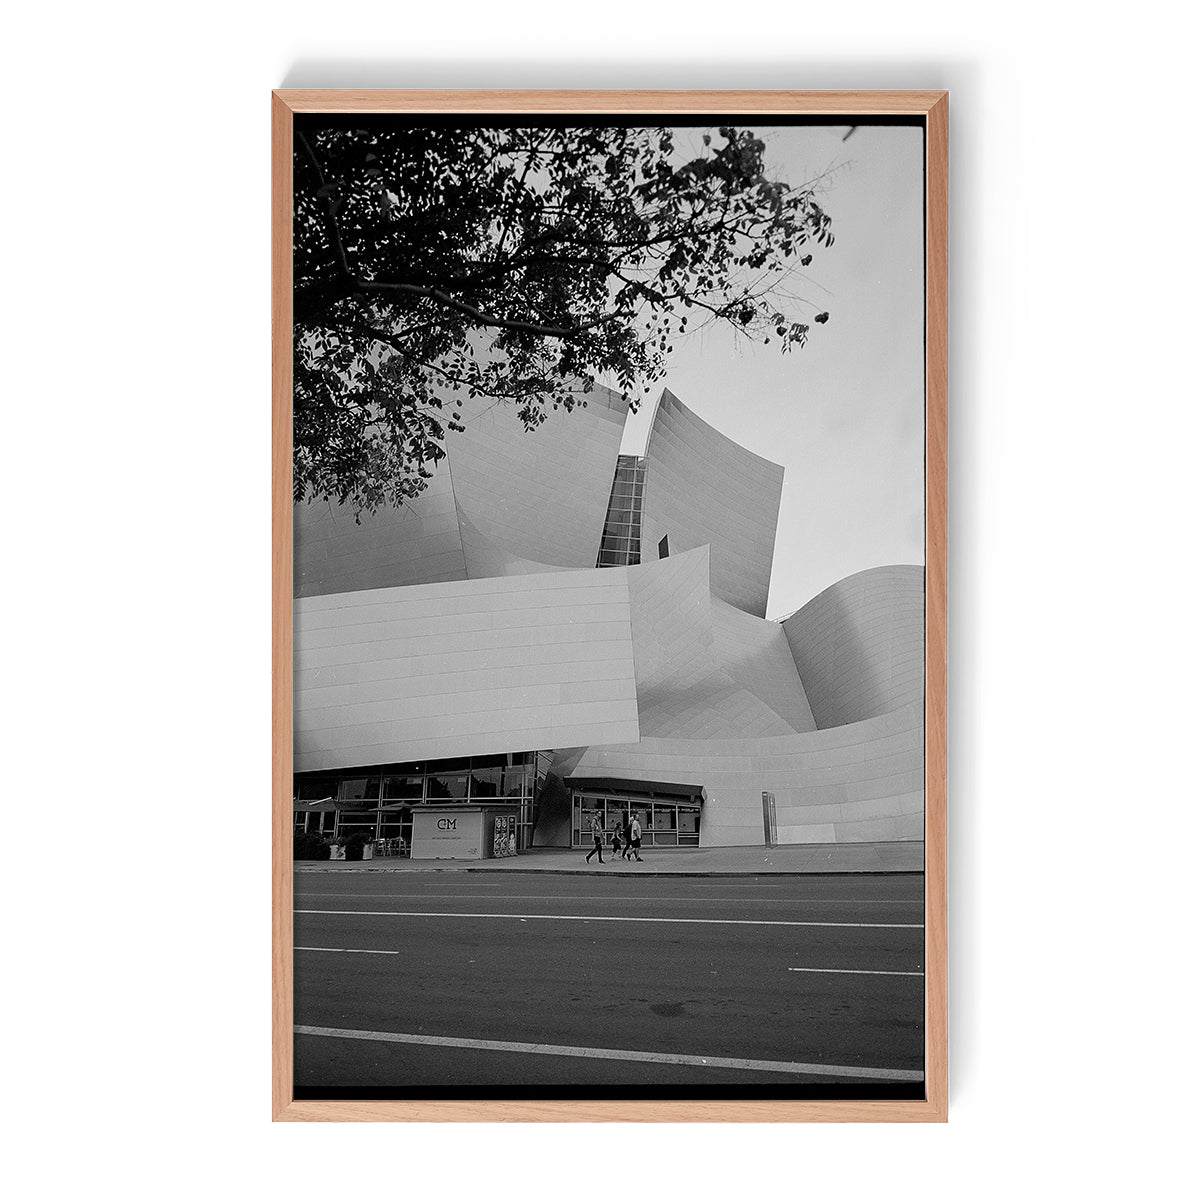 Hayden Worsfold black and white architecture photography art print makers mrkt Melbourne makers market